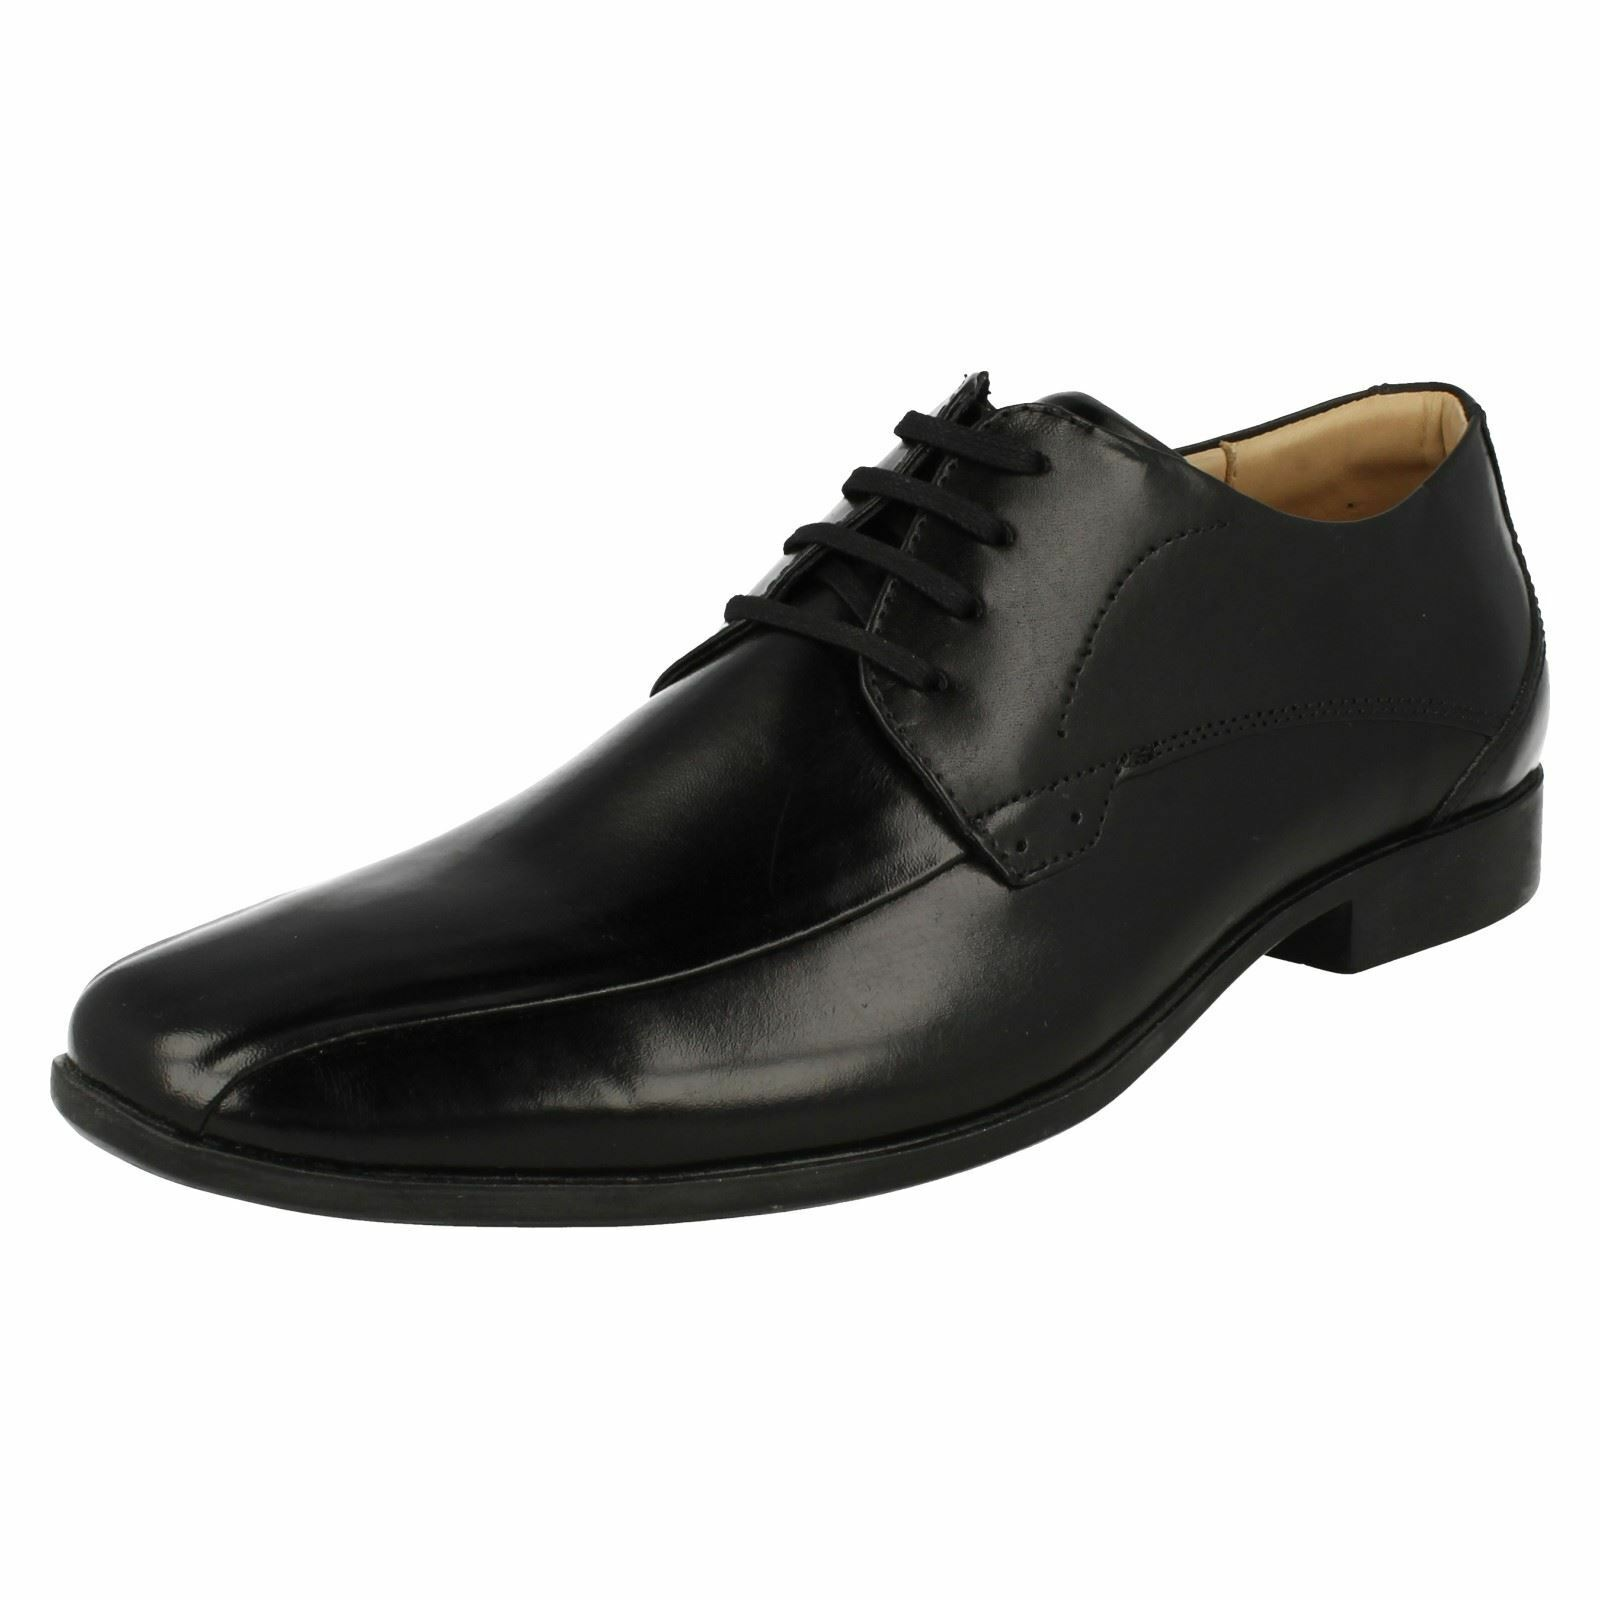 Herren Anatomic Gel Technology Technology Technology Derby Cut Lace Up Leder Schuhes Tapaua b61cd9